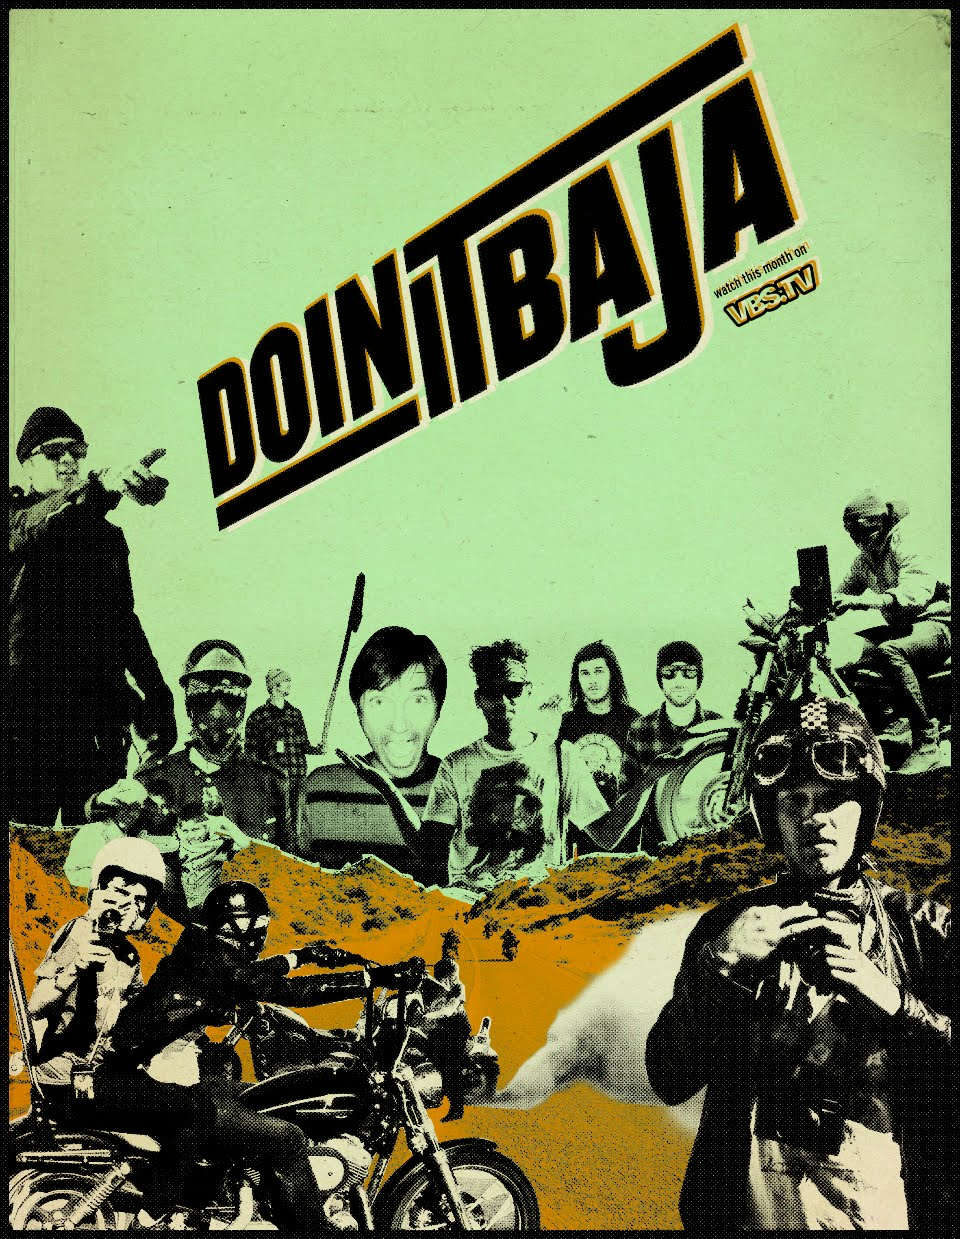 doin it baja event poster